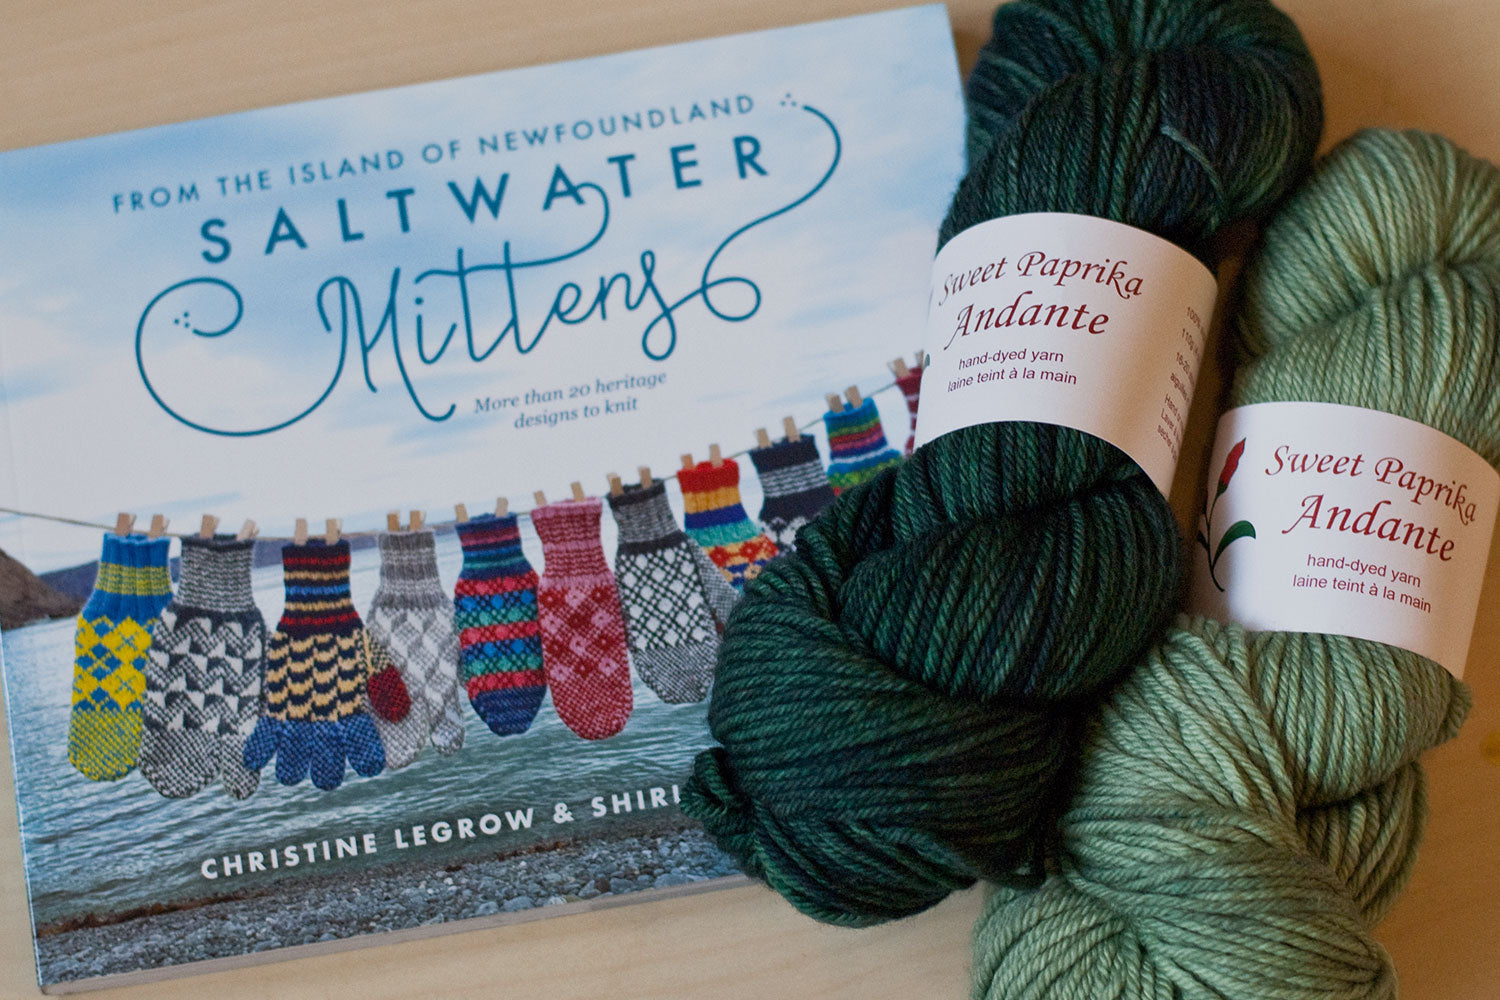 Saltwater Mittens book with two skeins of hand-dyed yarn in sage green and dark greenand-dyed yarn